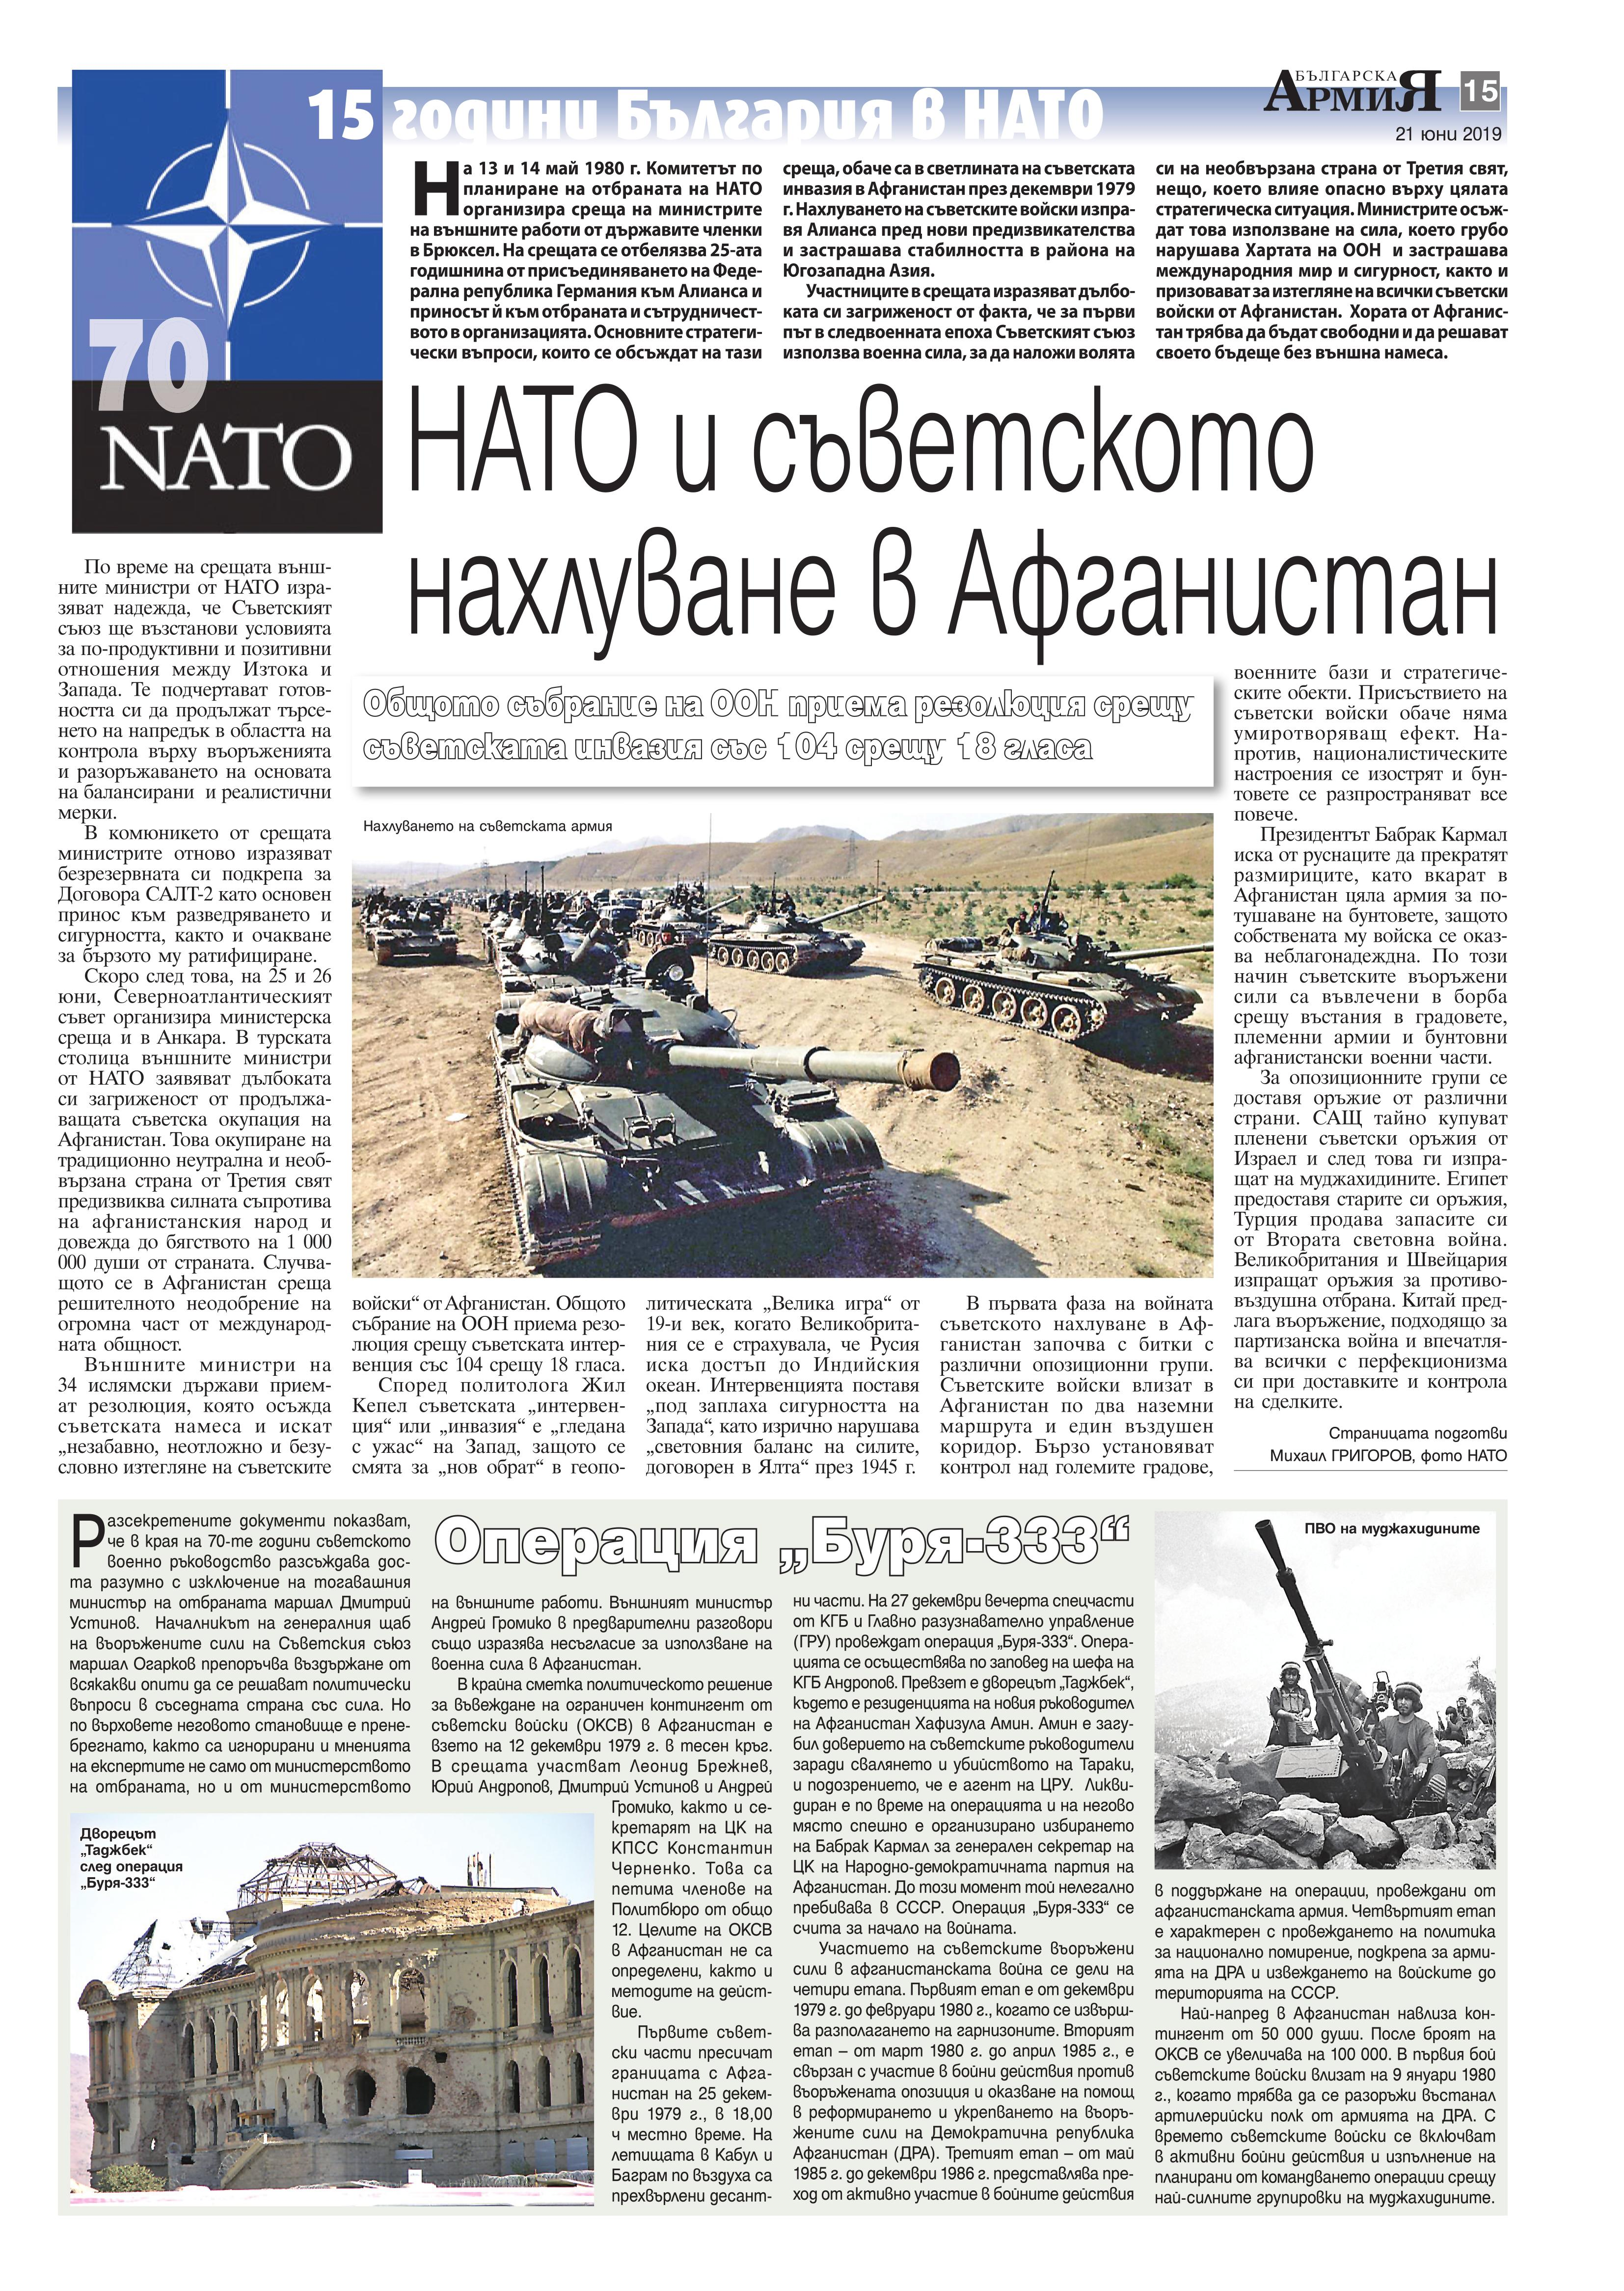 https://www.armymedia.bg/wp-content/uploads/2015/06/15.page1_-100.jpg